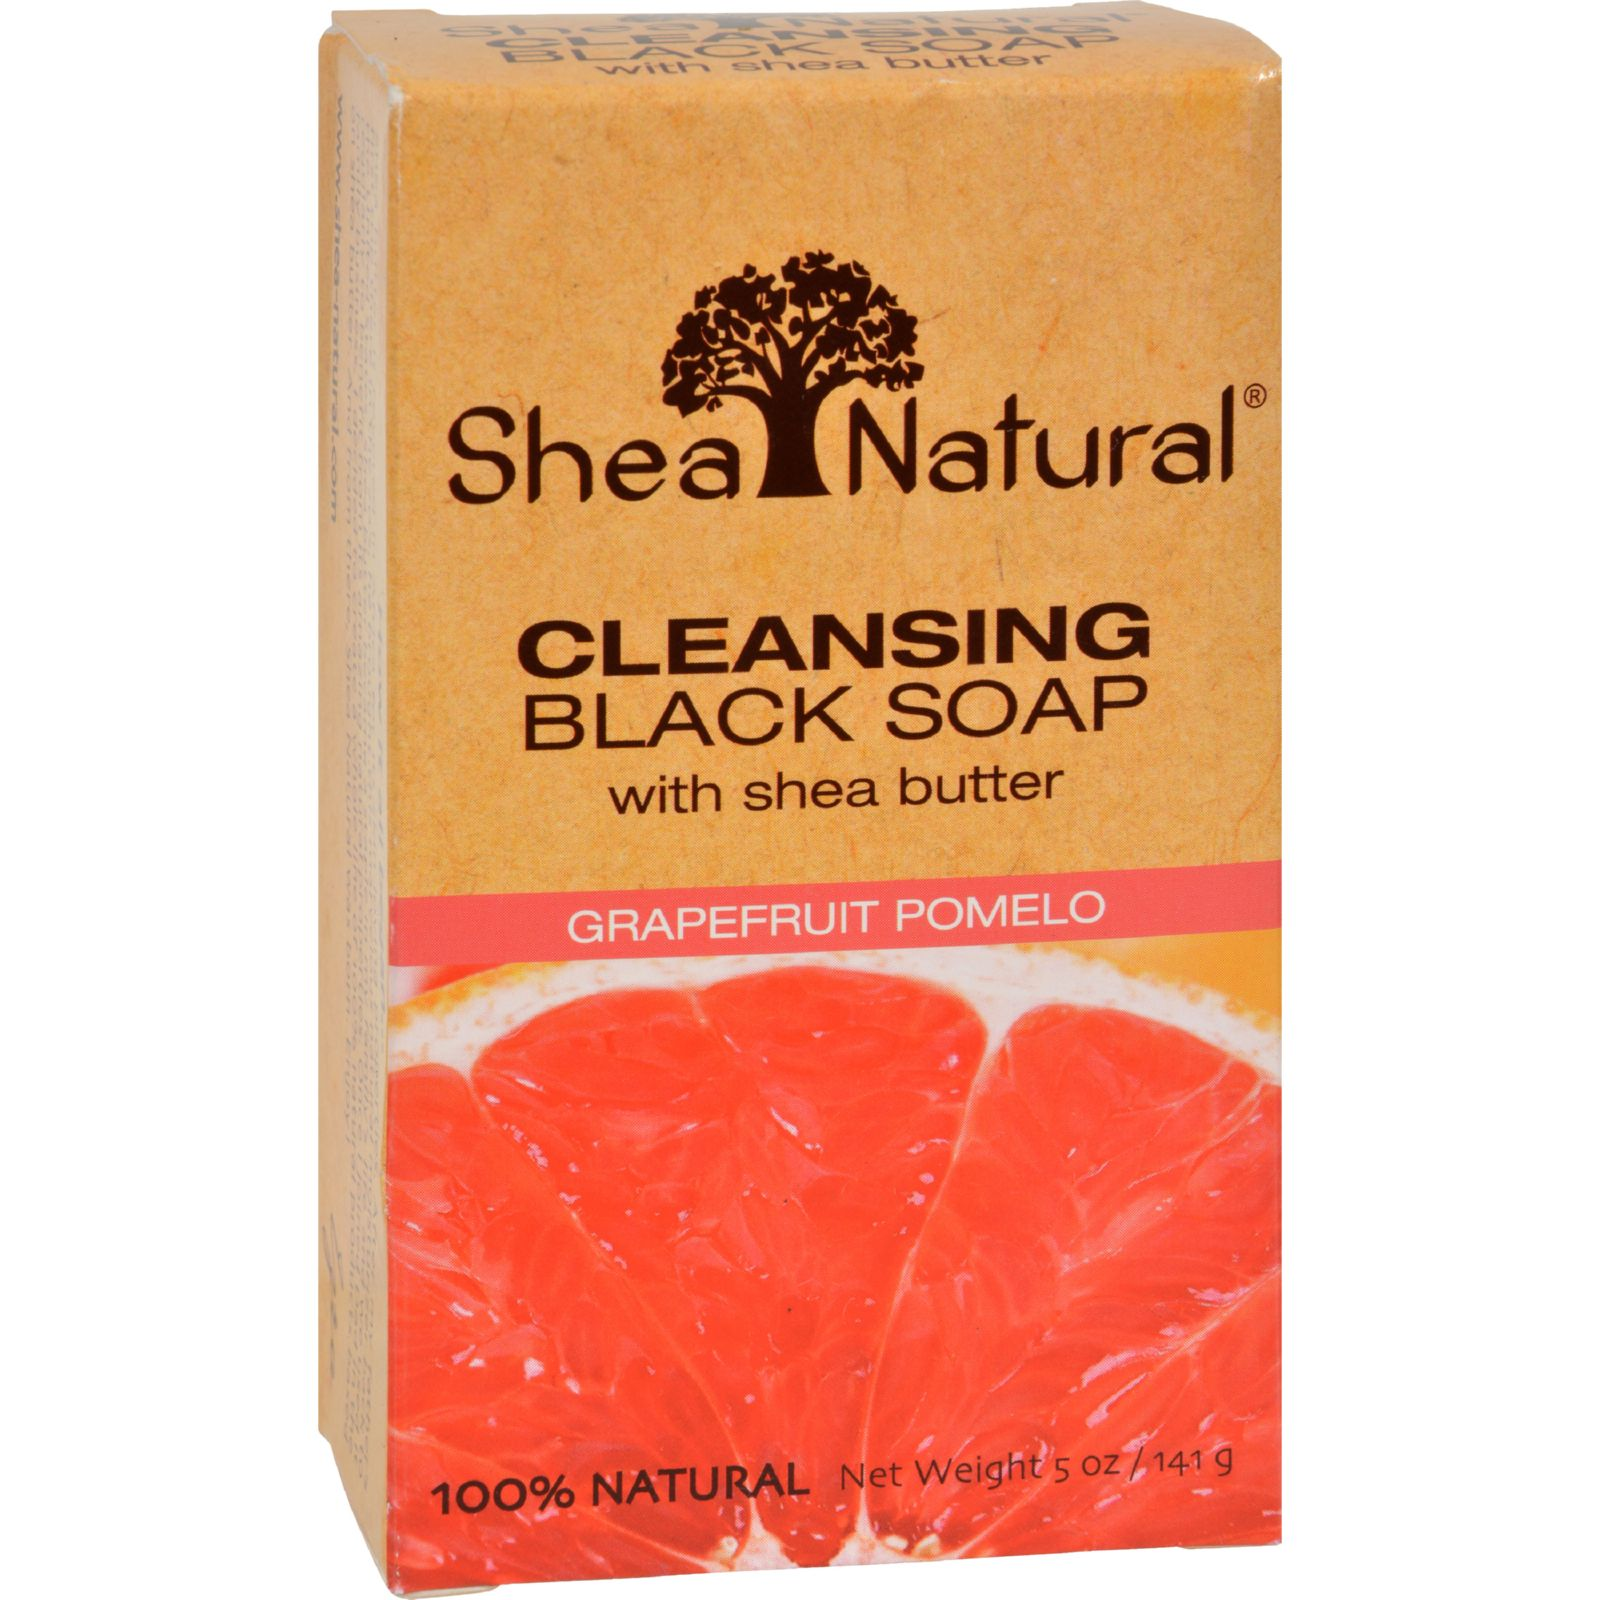 Shea Radiance Cleansing Black Bar Soap, Grapefruit Pomelo 5 Oz by Shea Natural (Pack of 3)